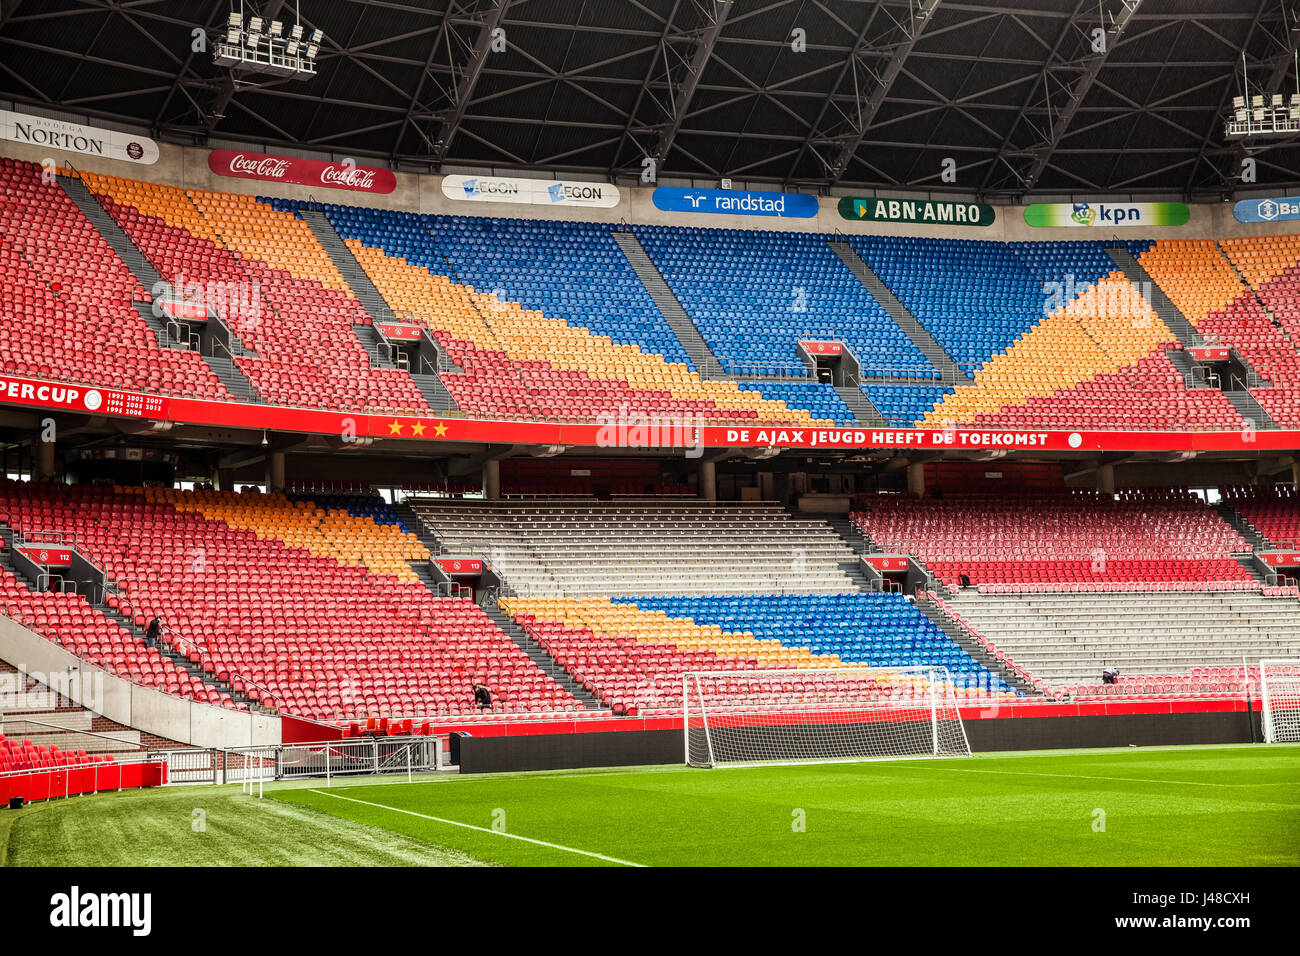 Interior view of Amsterdam Ajax Football Arena - Stock Image